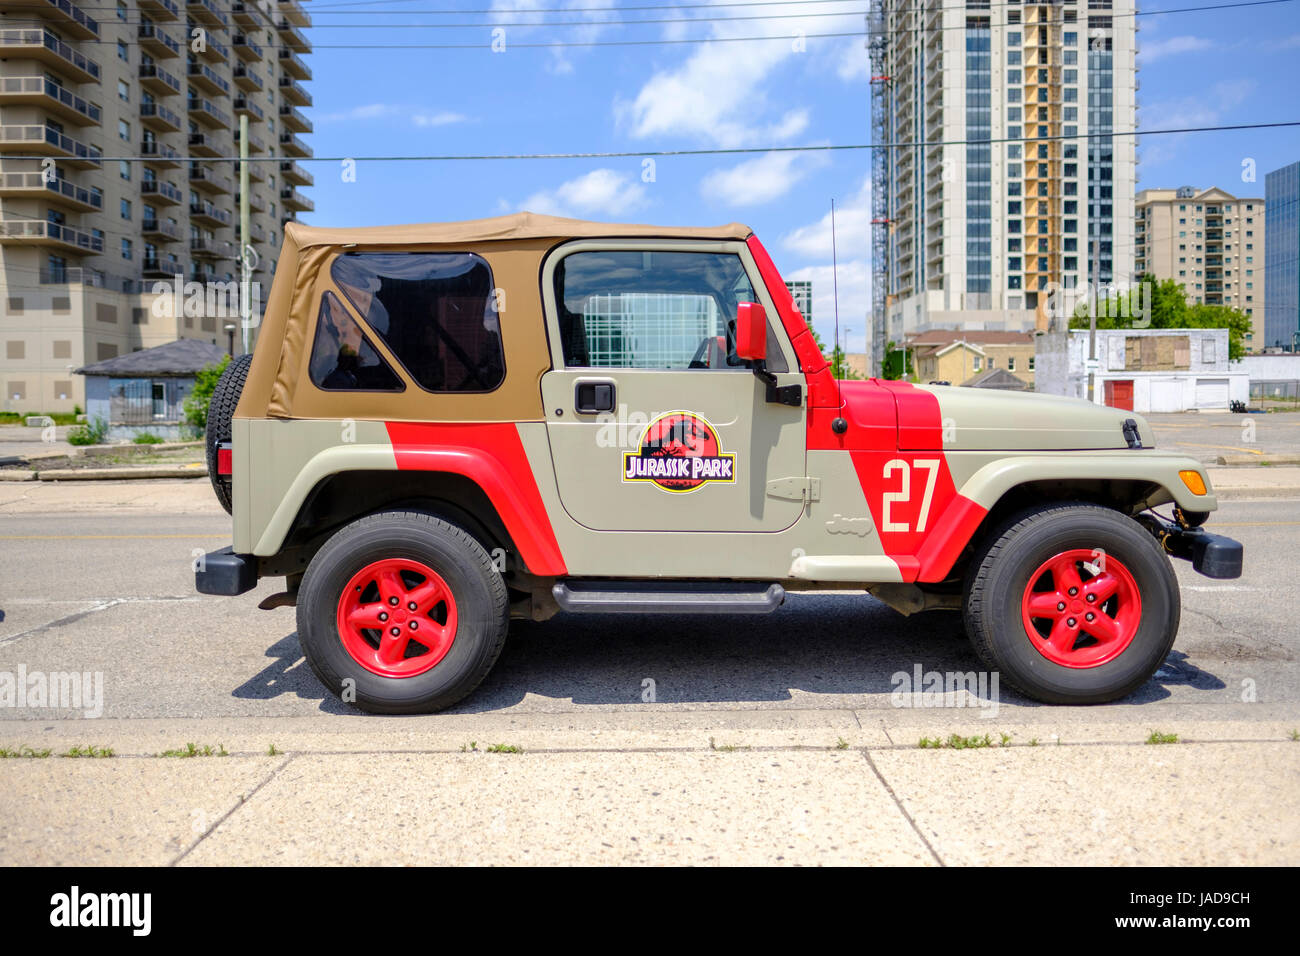 Popular Custom painted Jurassic Park Jeep, Jurassic Park logo, 4x4 vehicle  ZB67